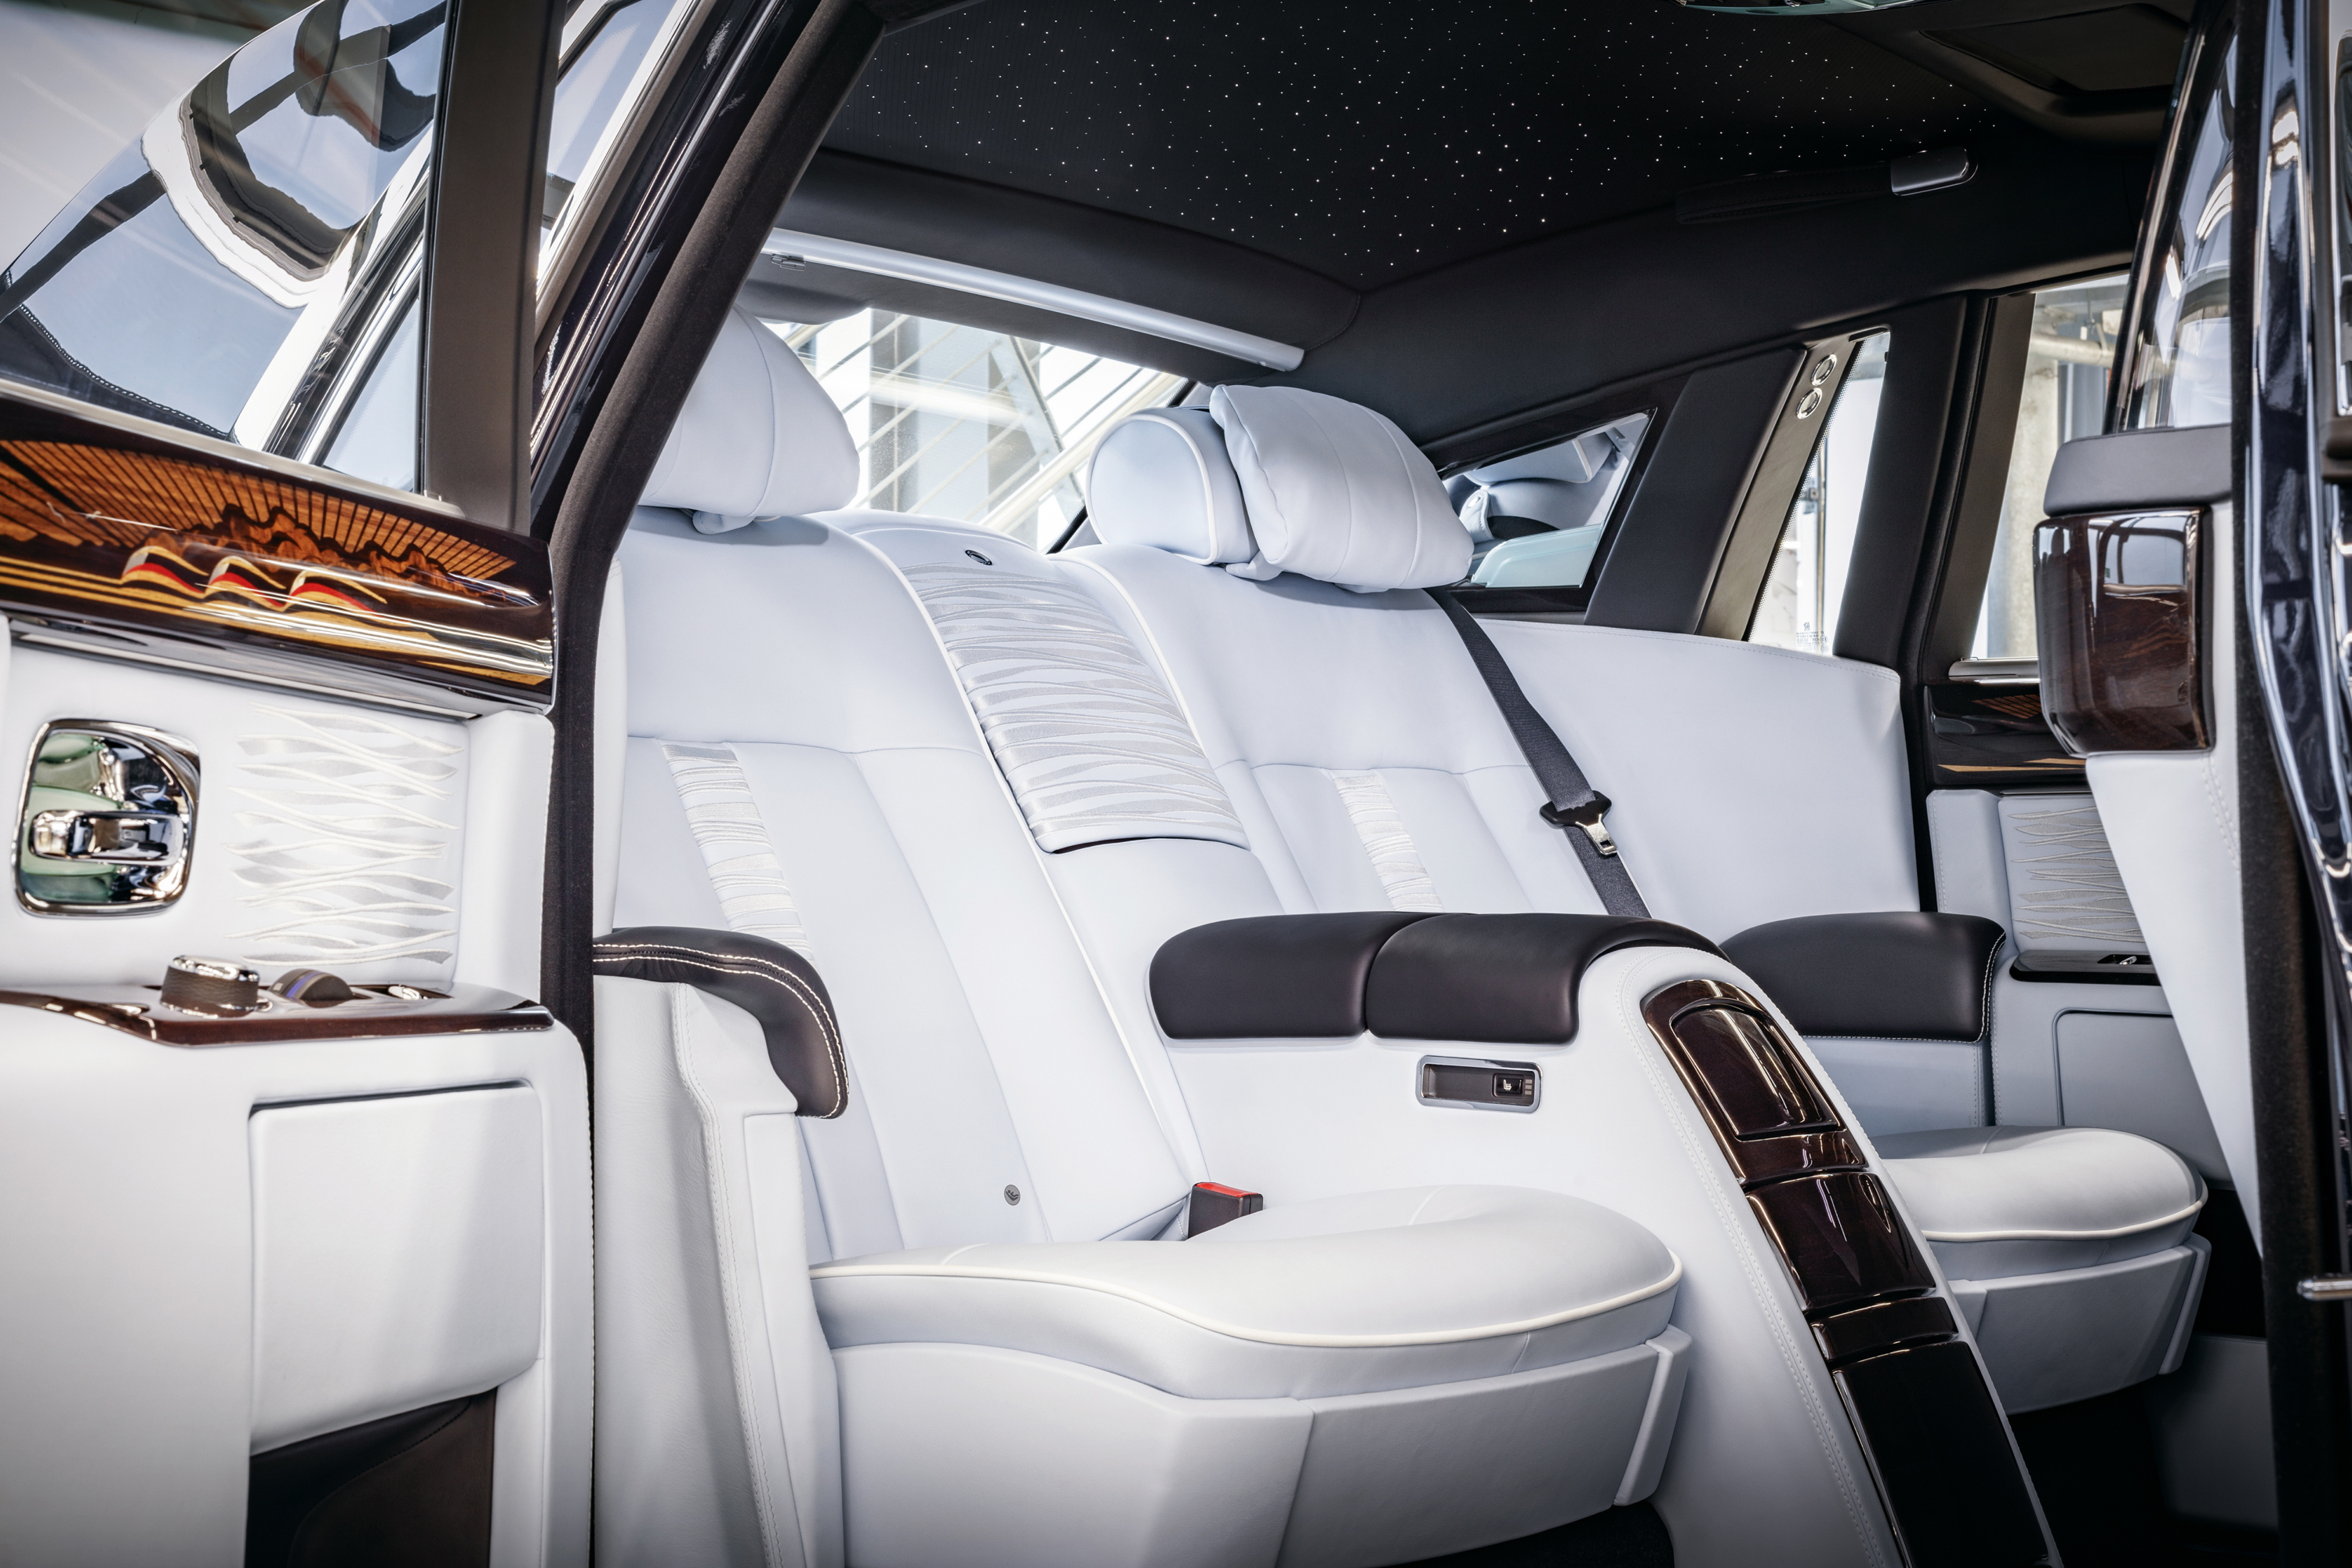 Final Rolls-Royce Phantom VII interior